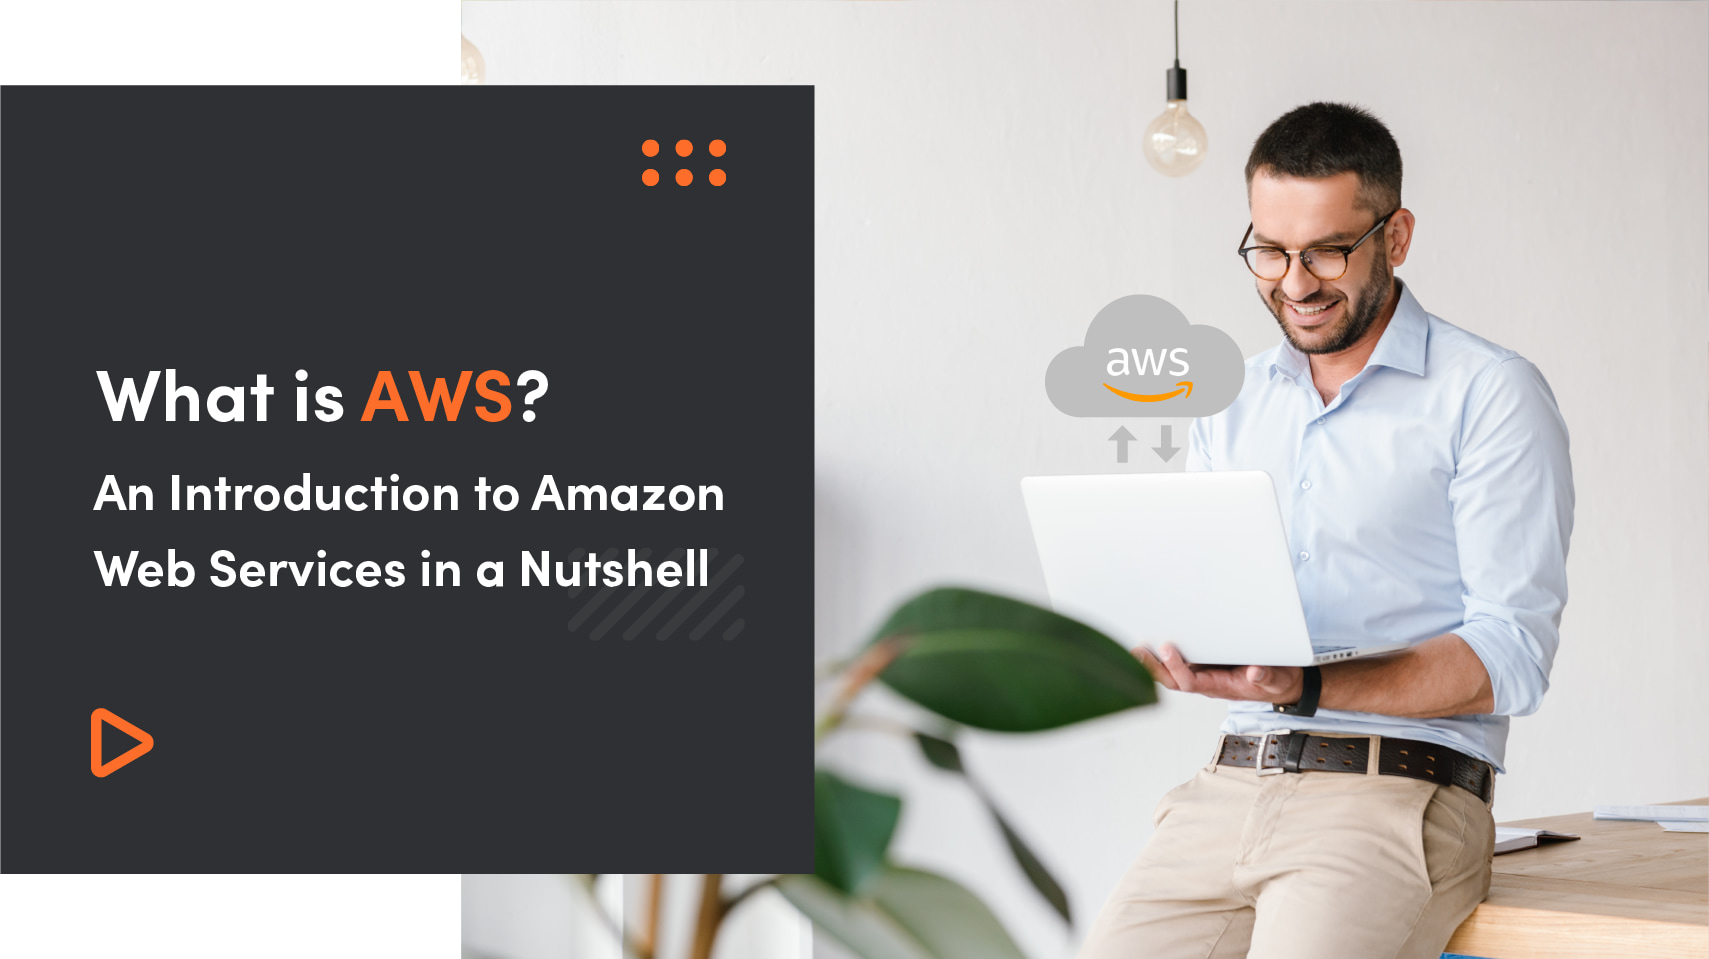 What Is AWS? An Introduction To Amazon Web Services In A Nutshell